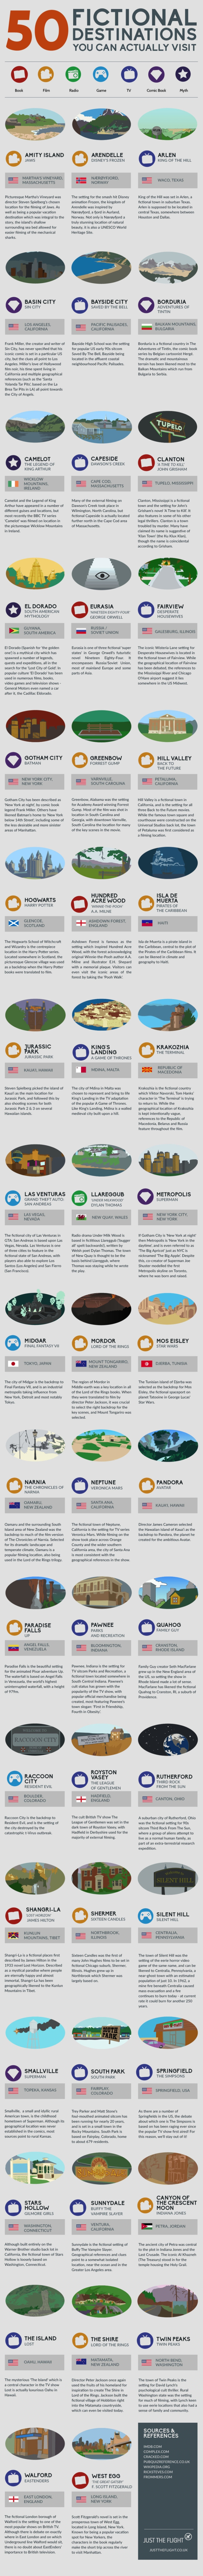 How You Can Visit Your Favorite Movie Locations In Real Life (infographic)